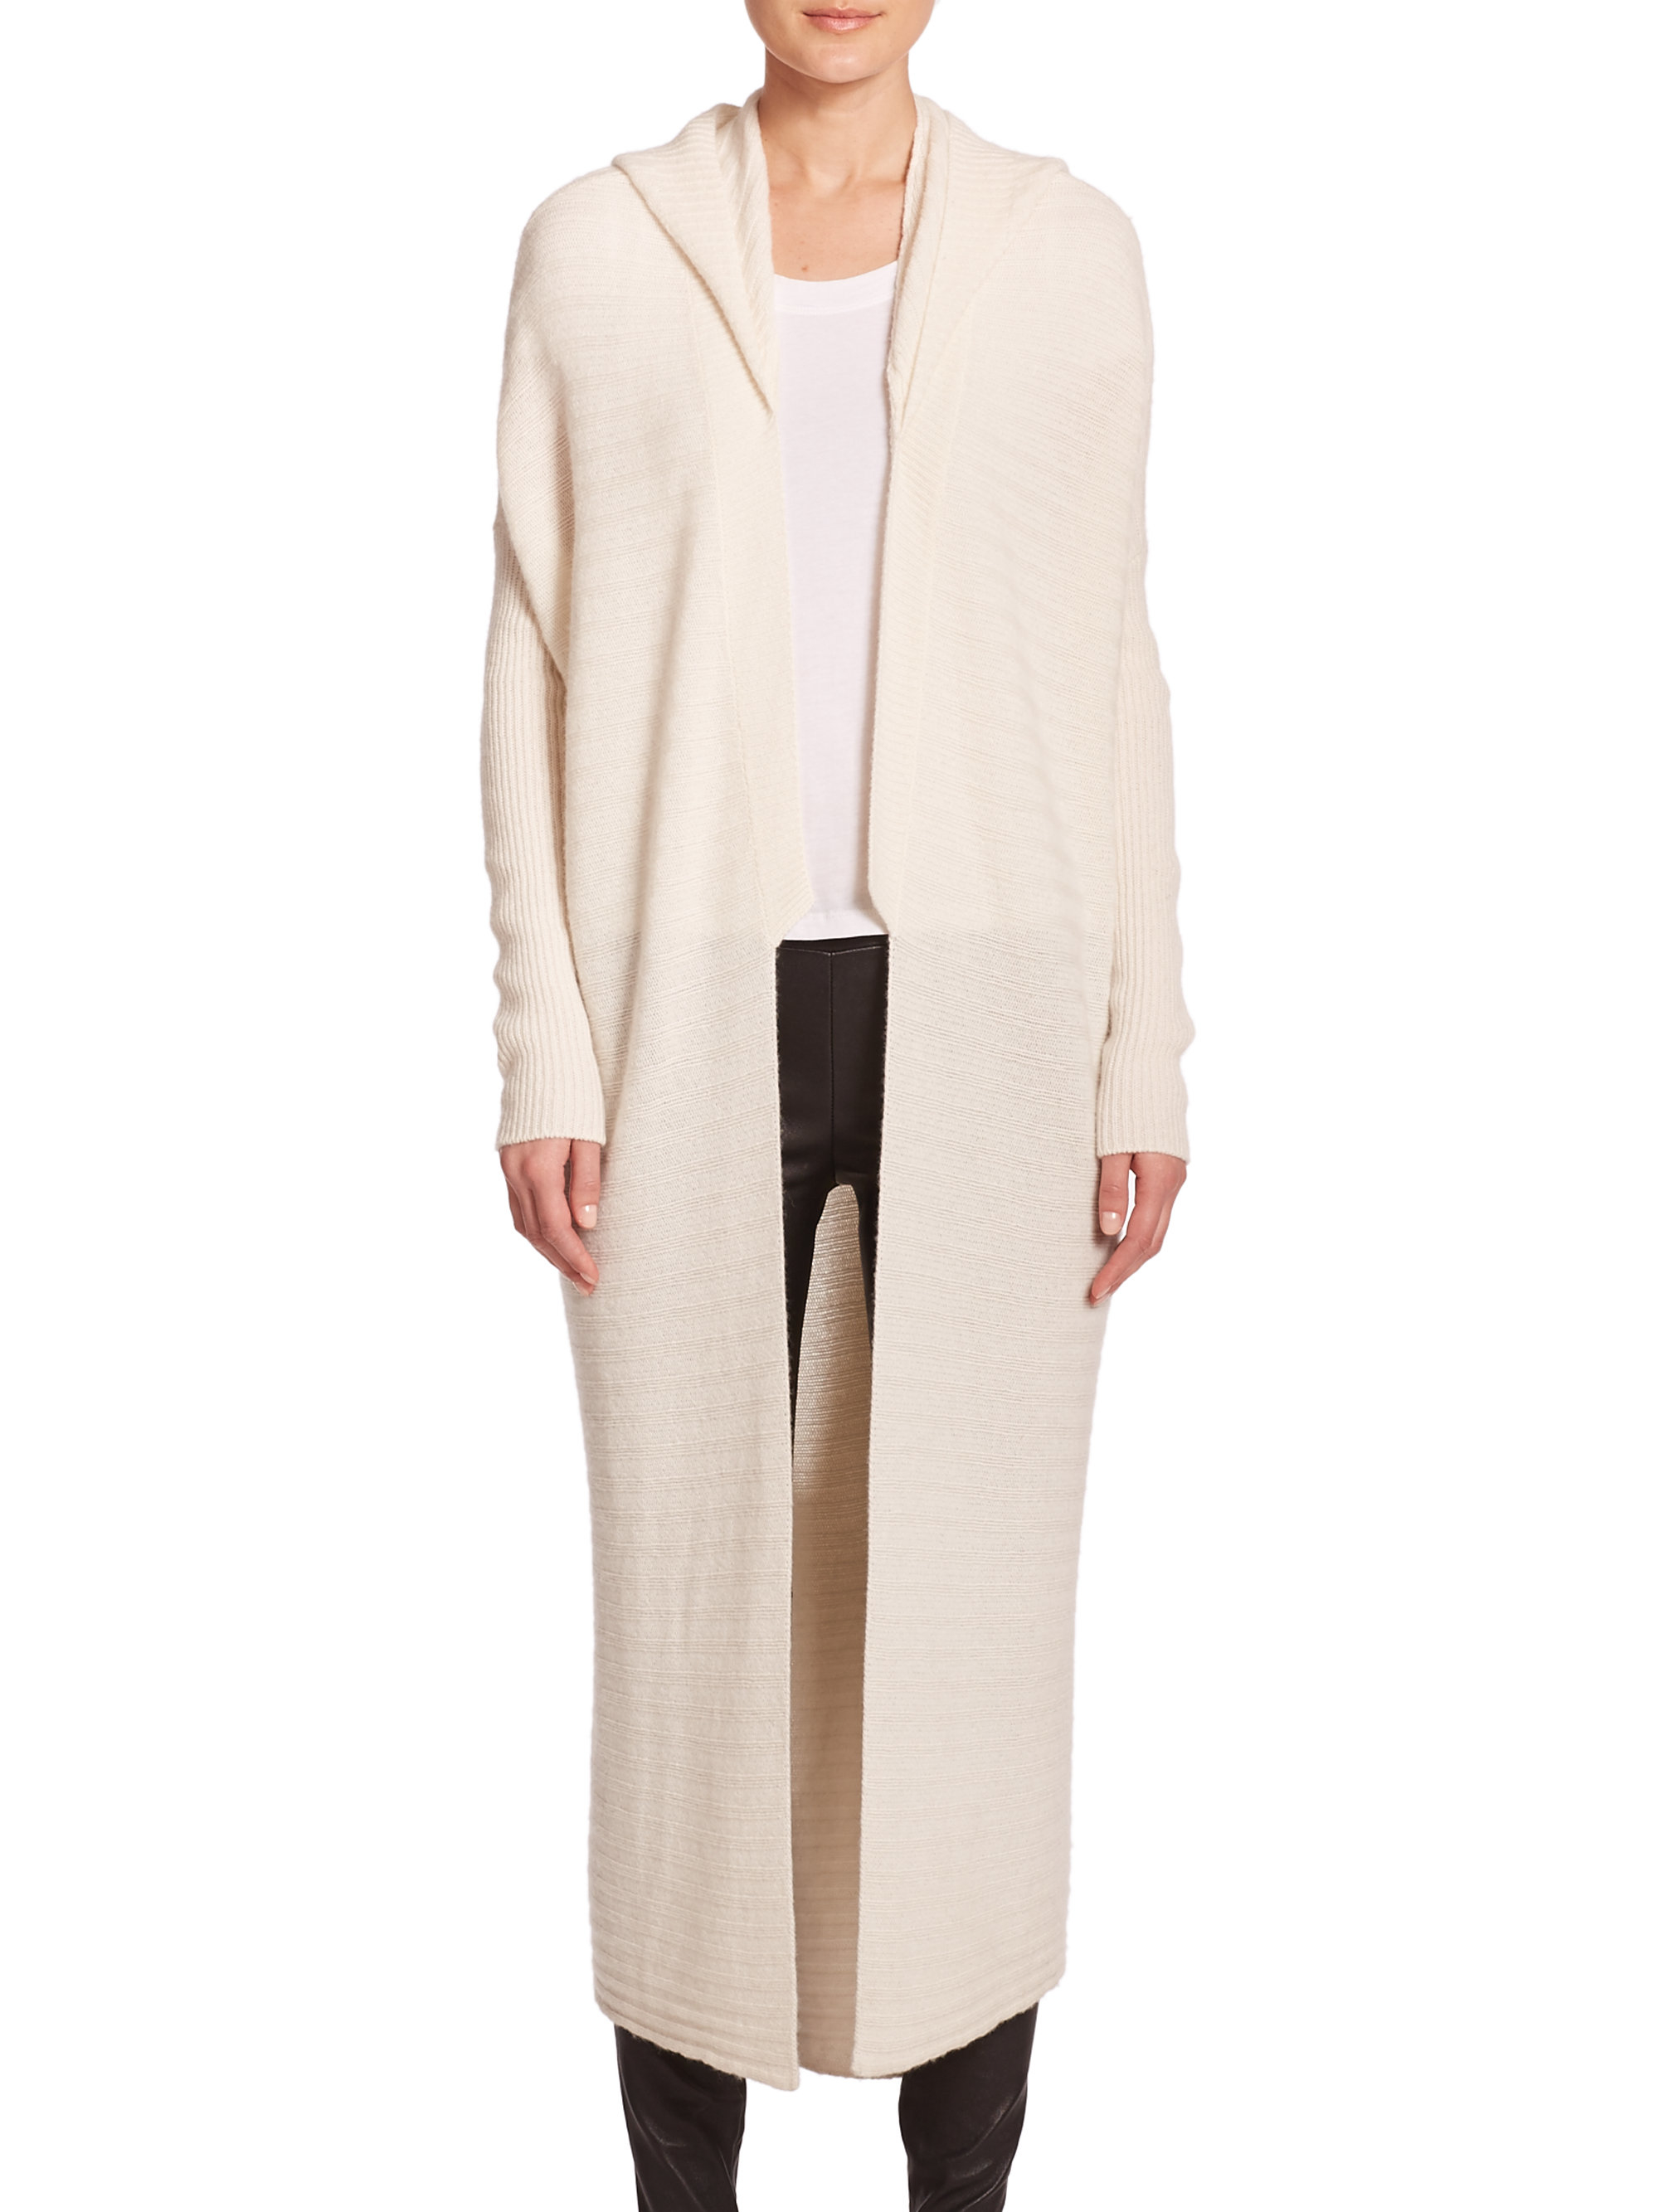 Alice + olivia Wool/cashmere Oversized Sweater in Natural | Lyst